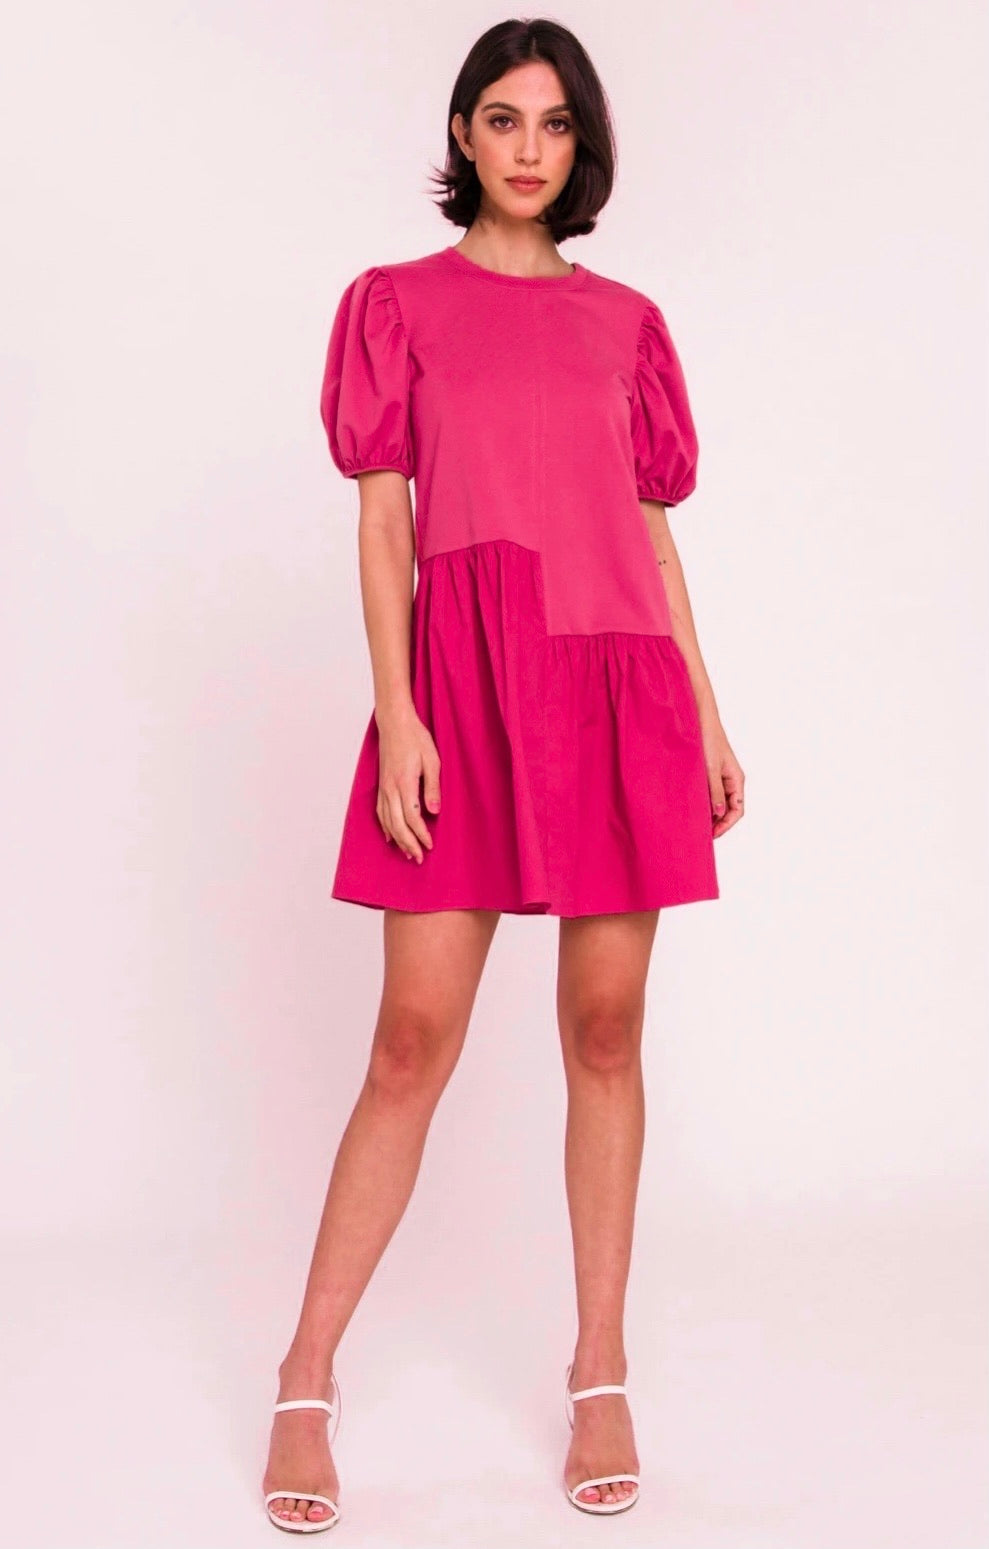 Knit Woven Mixed Dress - Fuschia